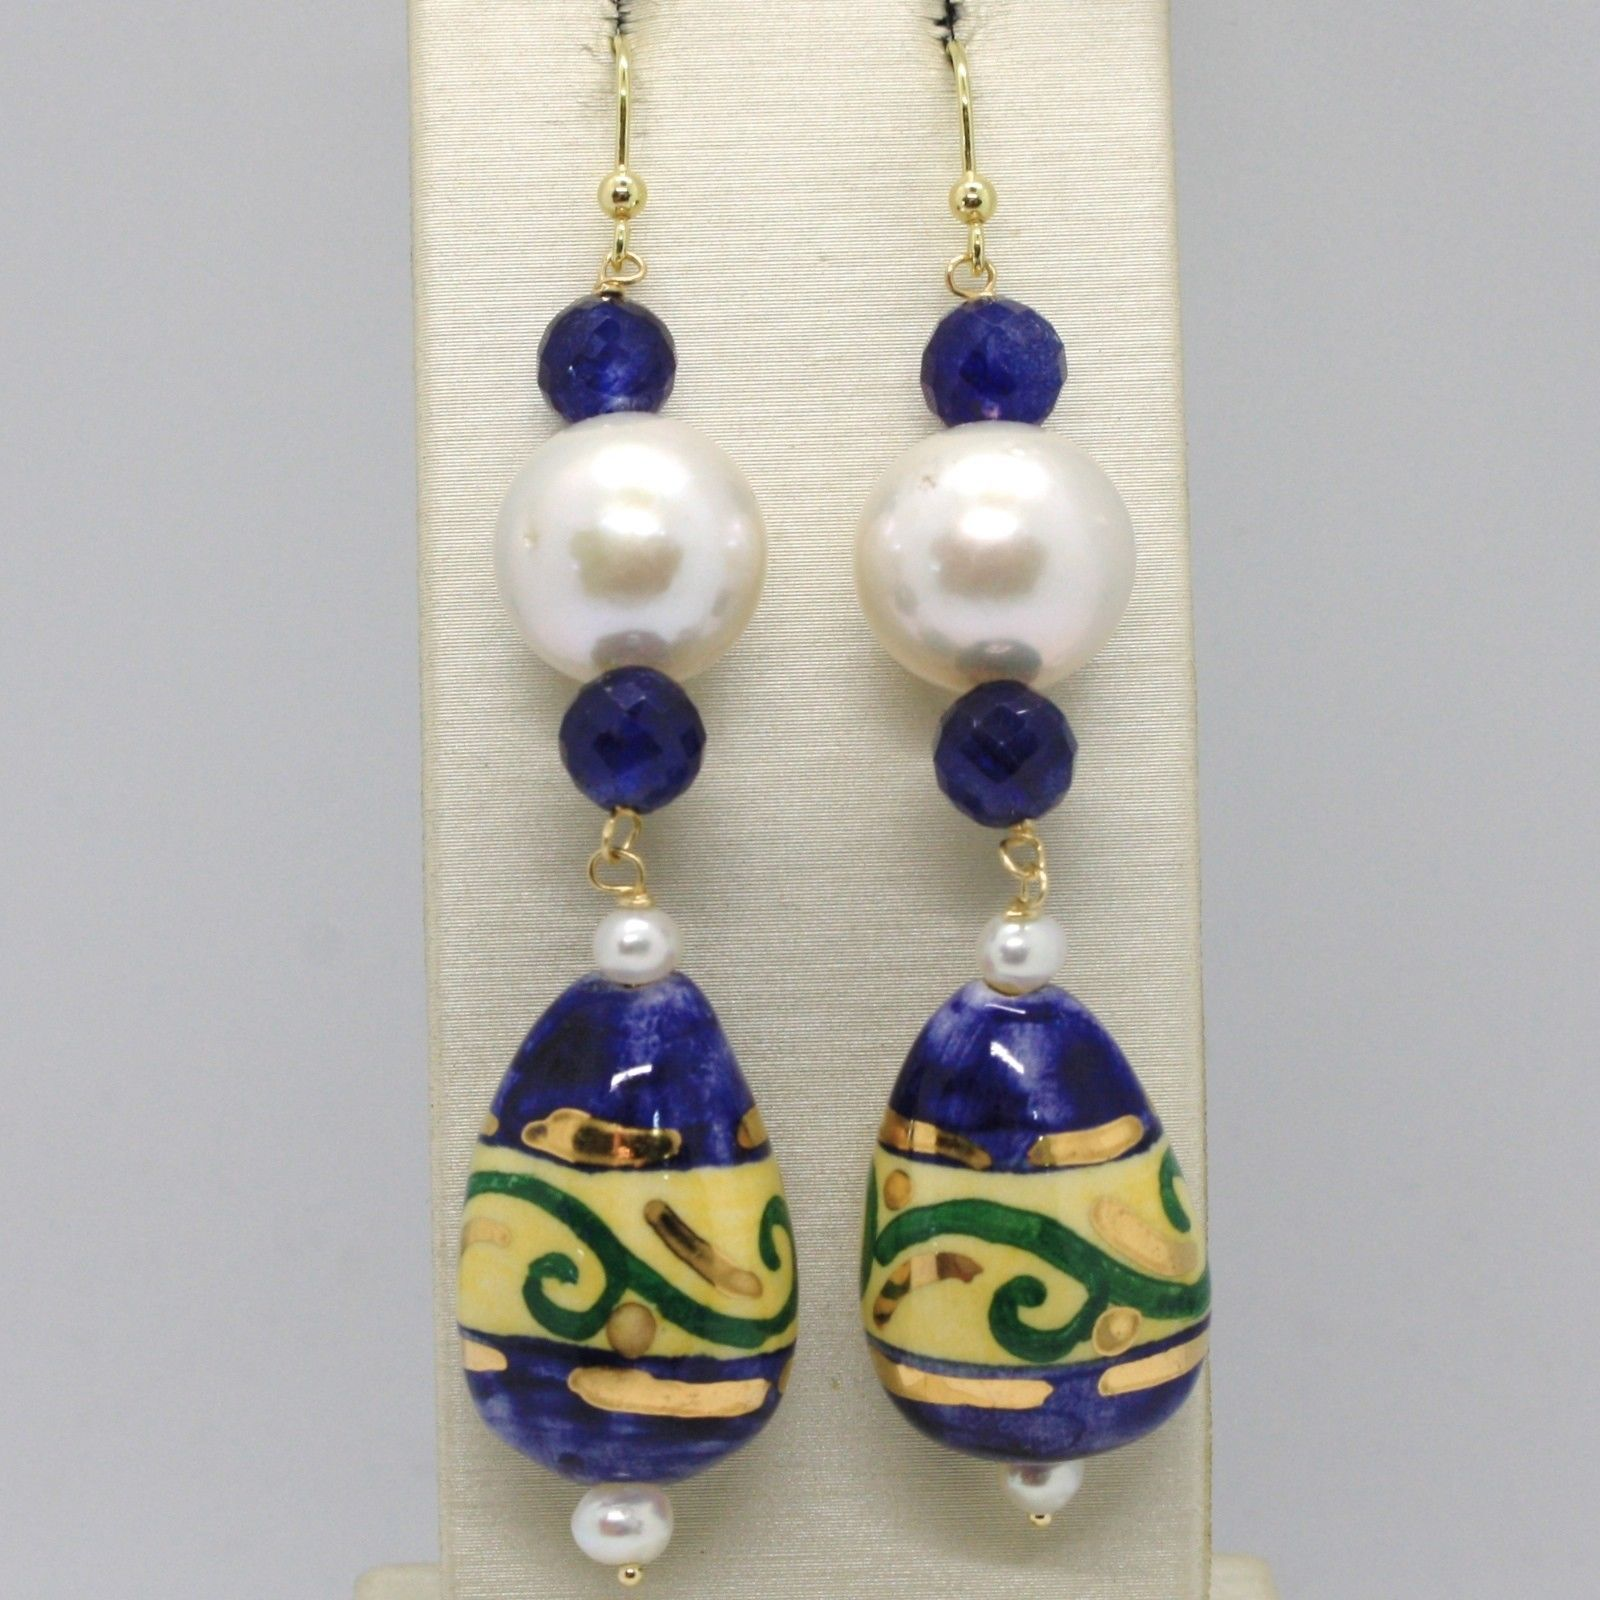 18K YELLOW GOLD EARRINGS SAPPHIRE, PEARL, CERAMIC BIG DROP HAND PAINTED IN ITALY